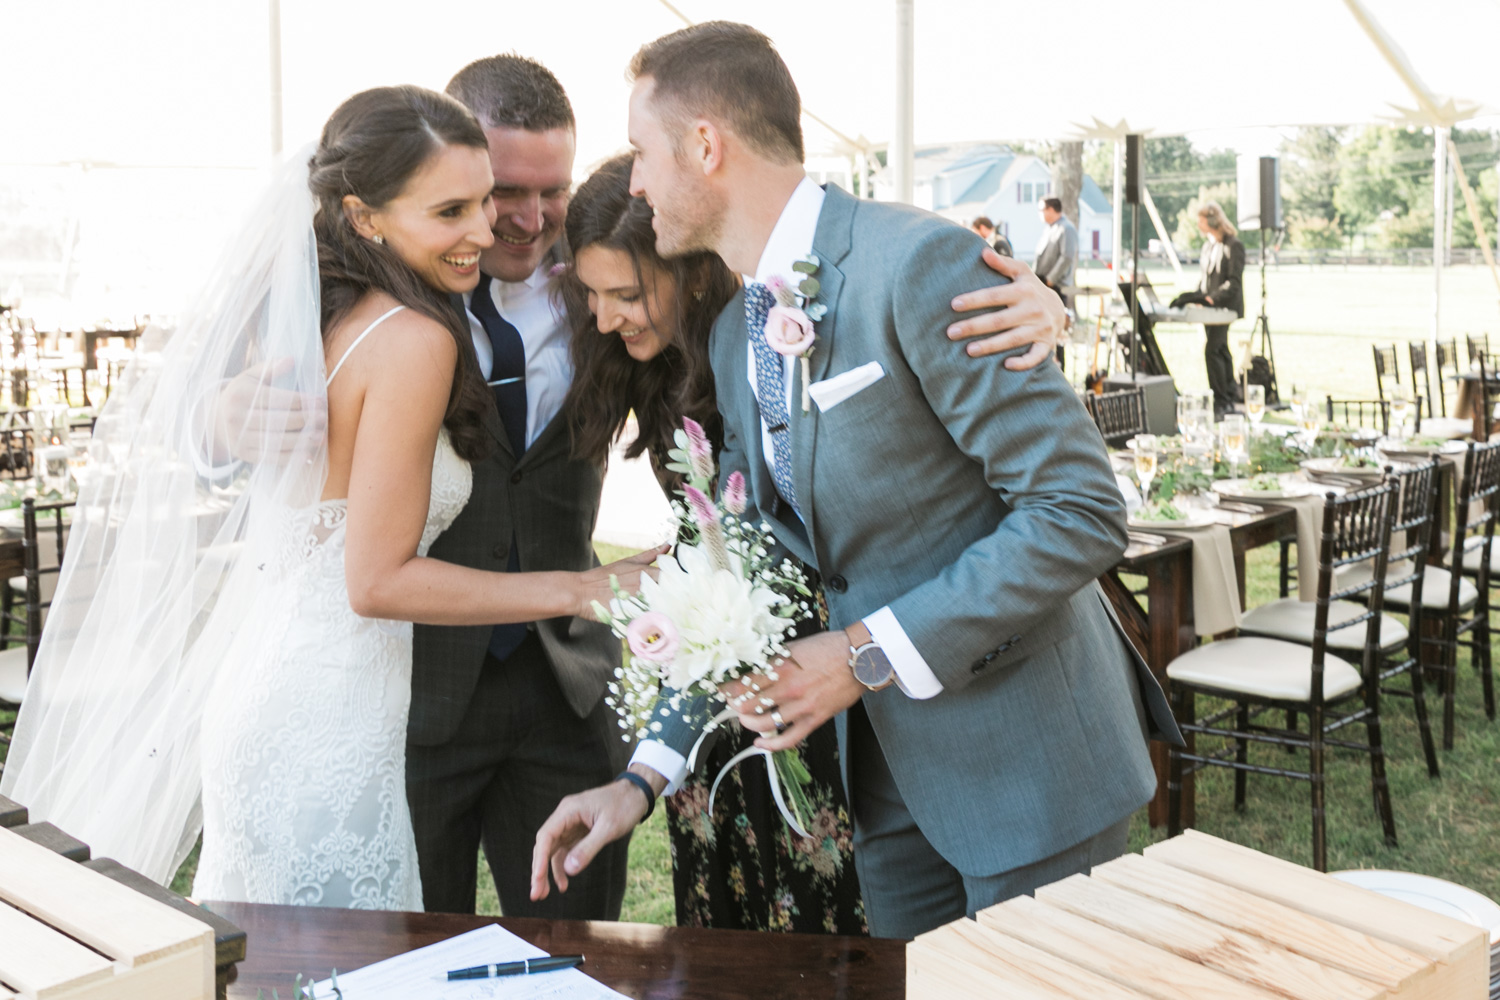 image of bridal party celebrating marriage certificate signing at Gettysburg wedding ceremony